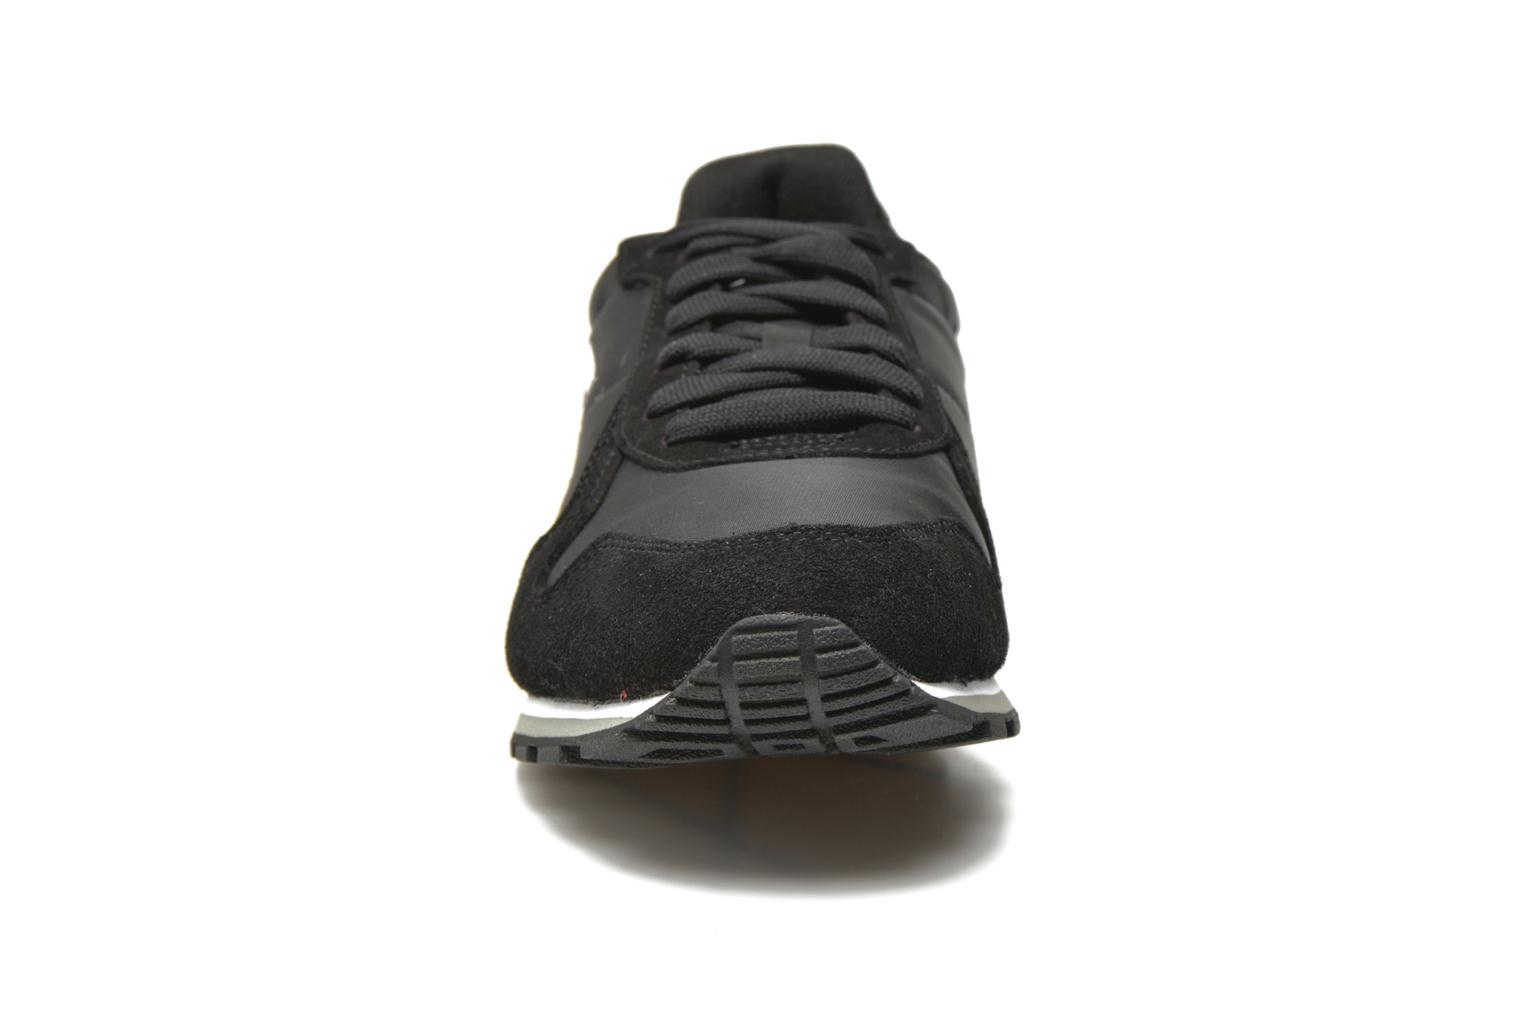 ST Runner NL Black/white